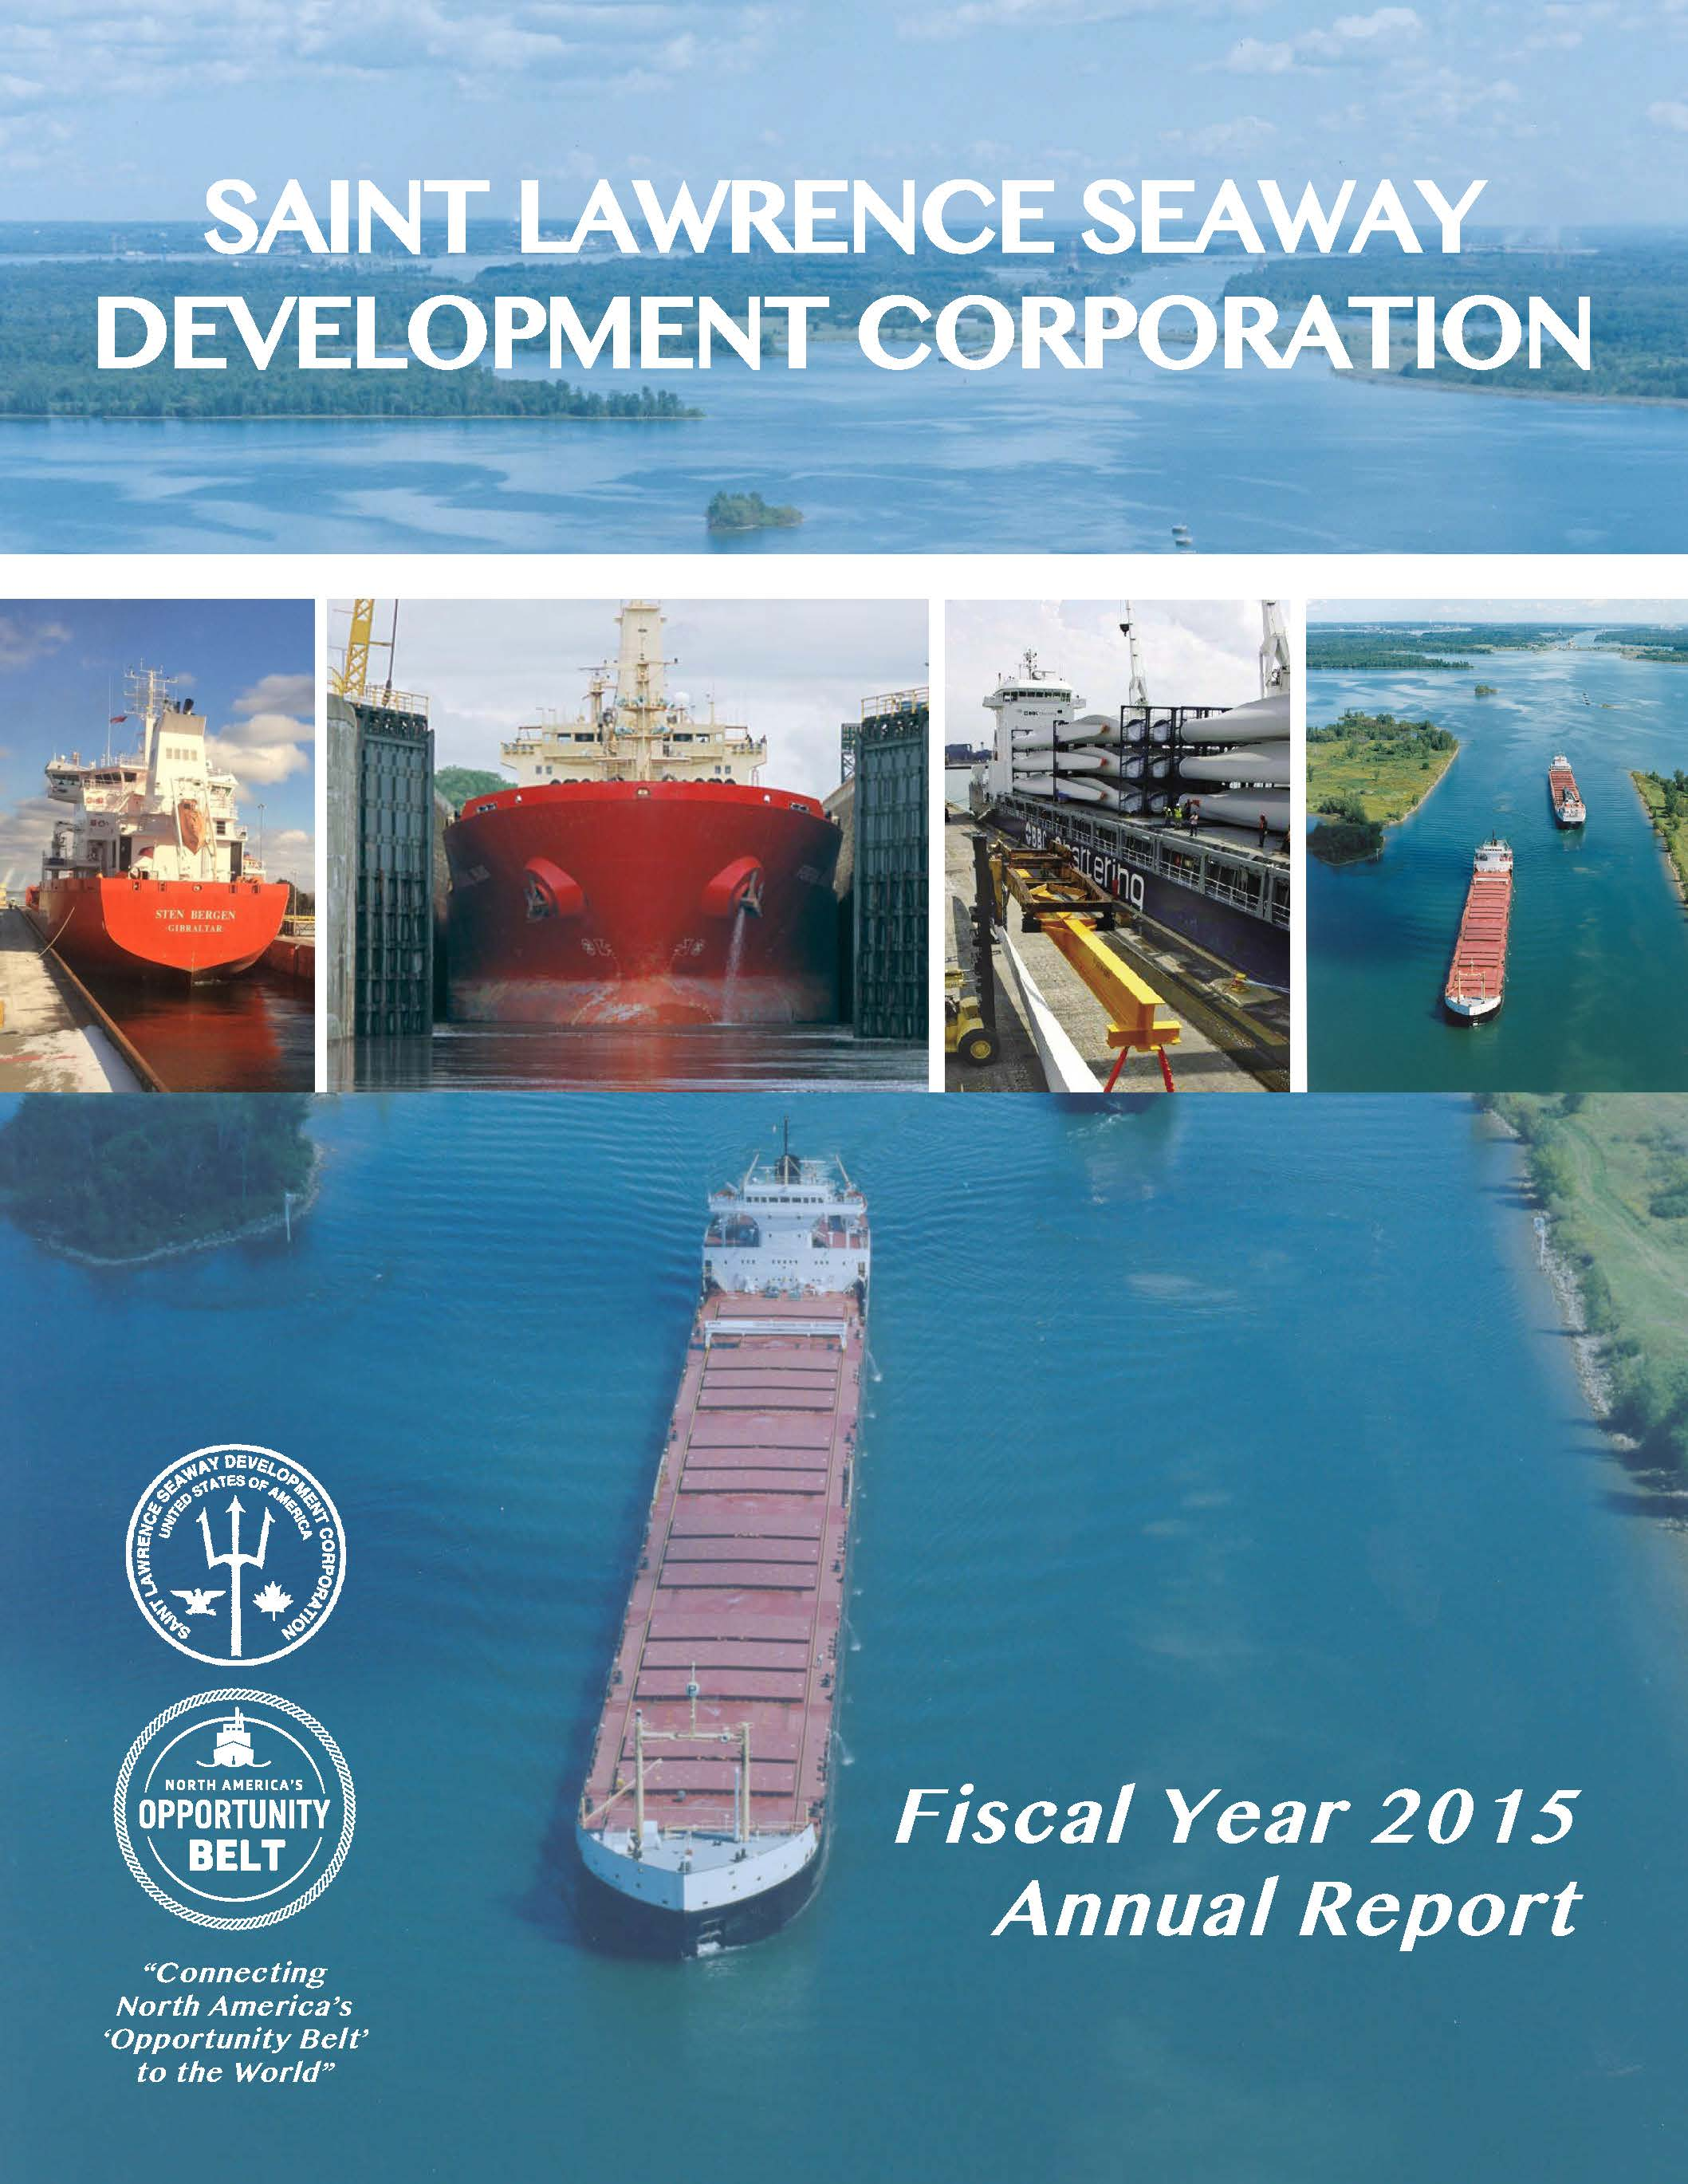 SLSDC FY'15 Annual Report cover